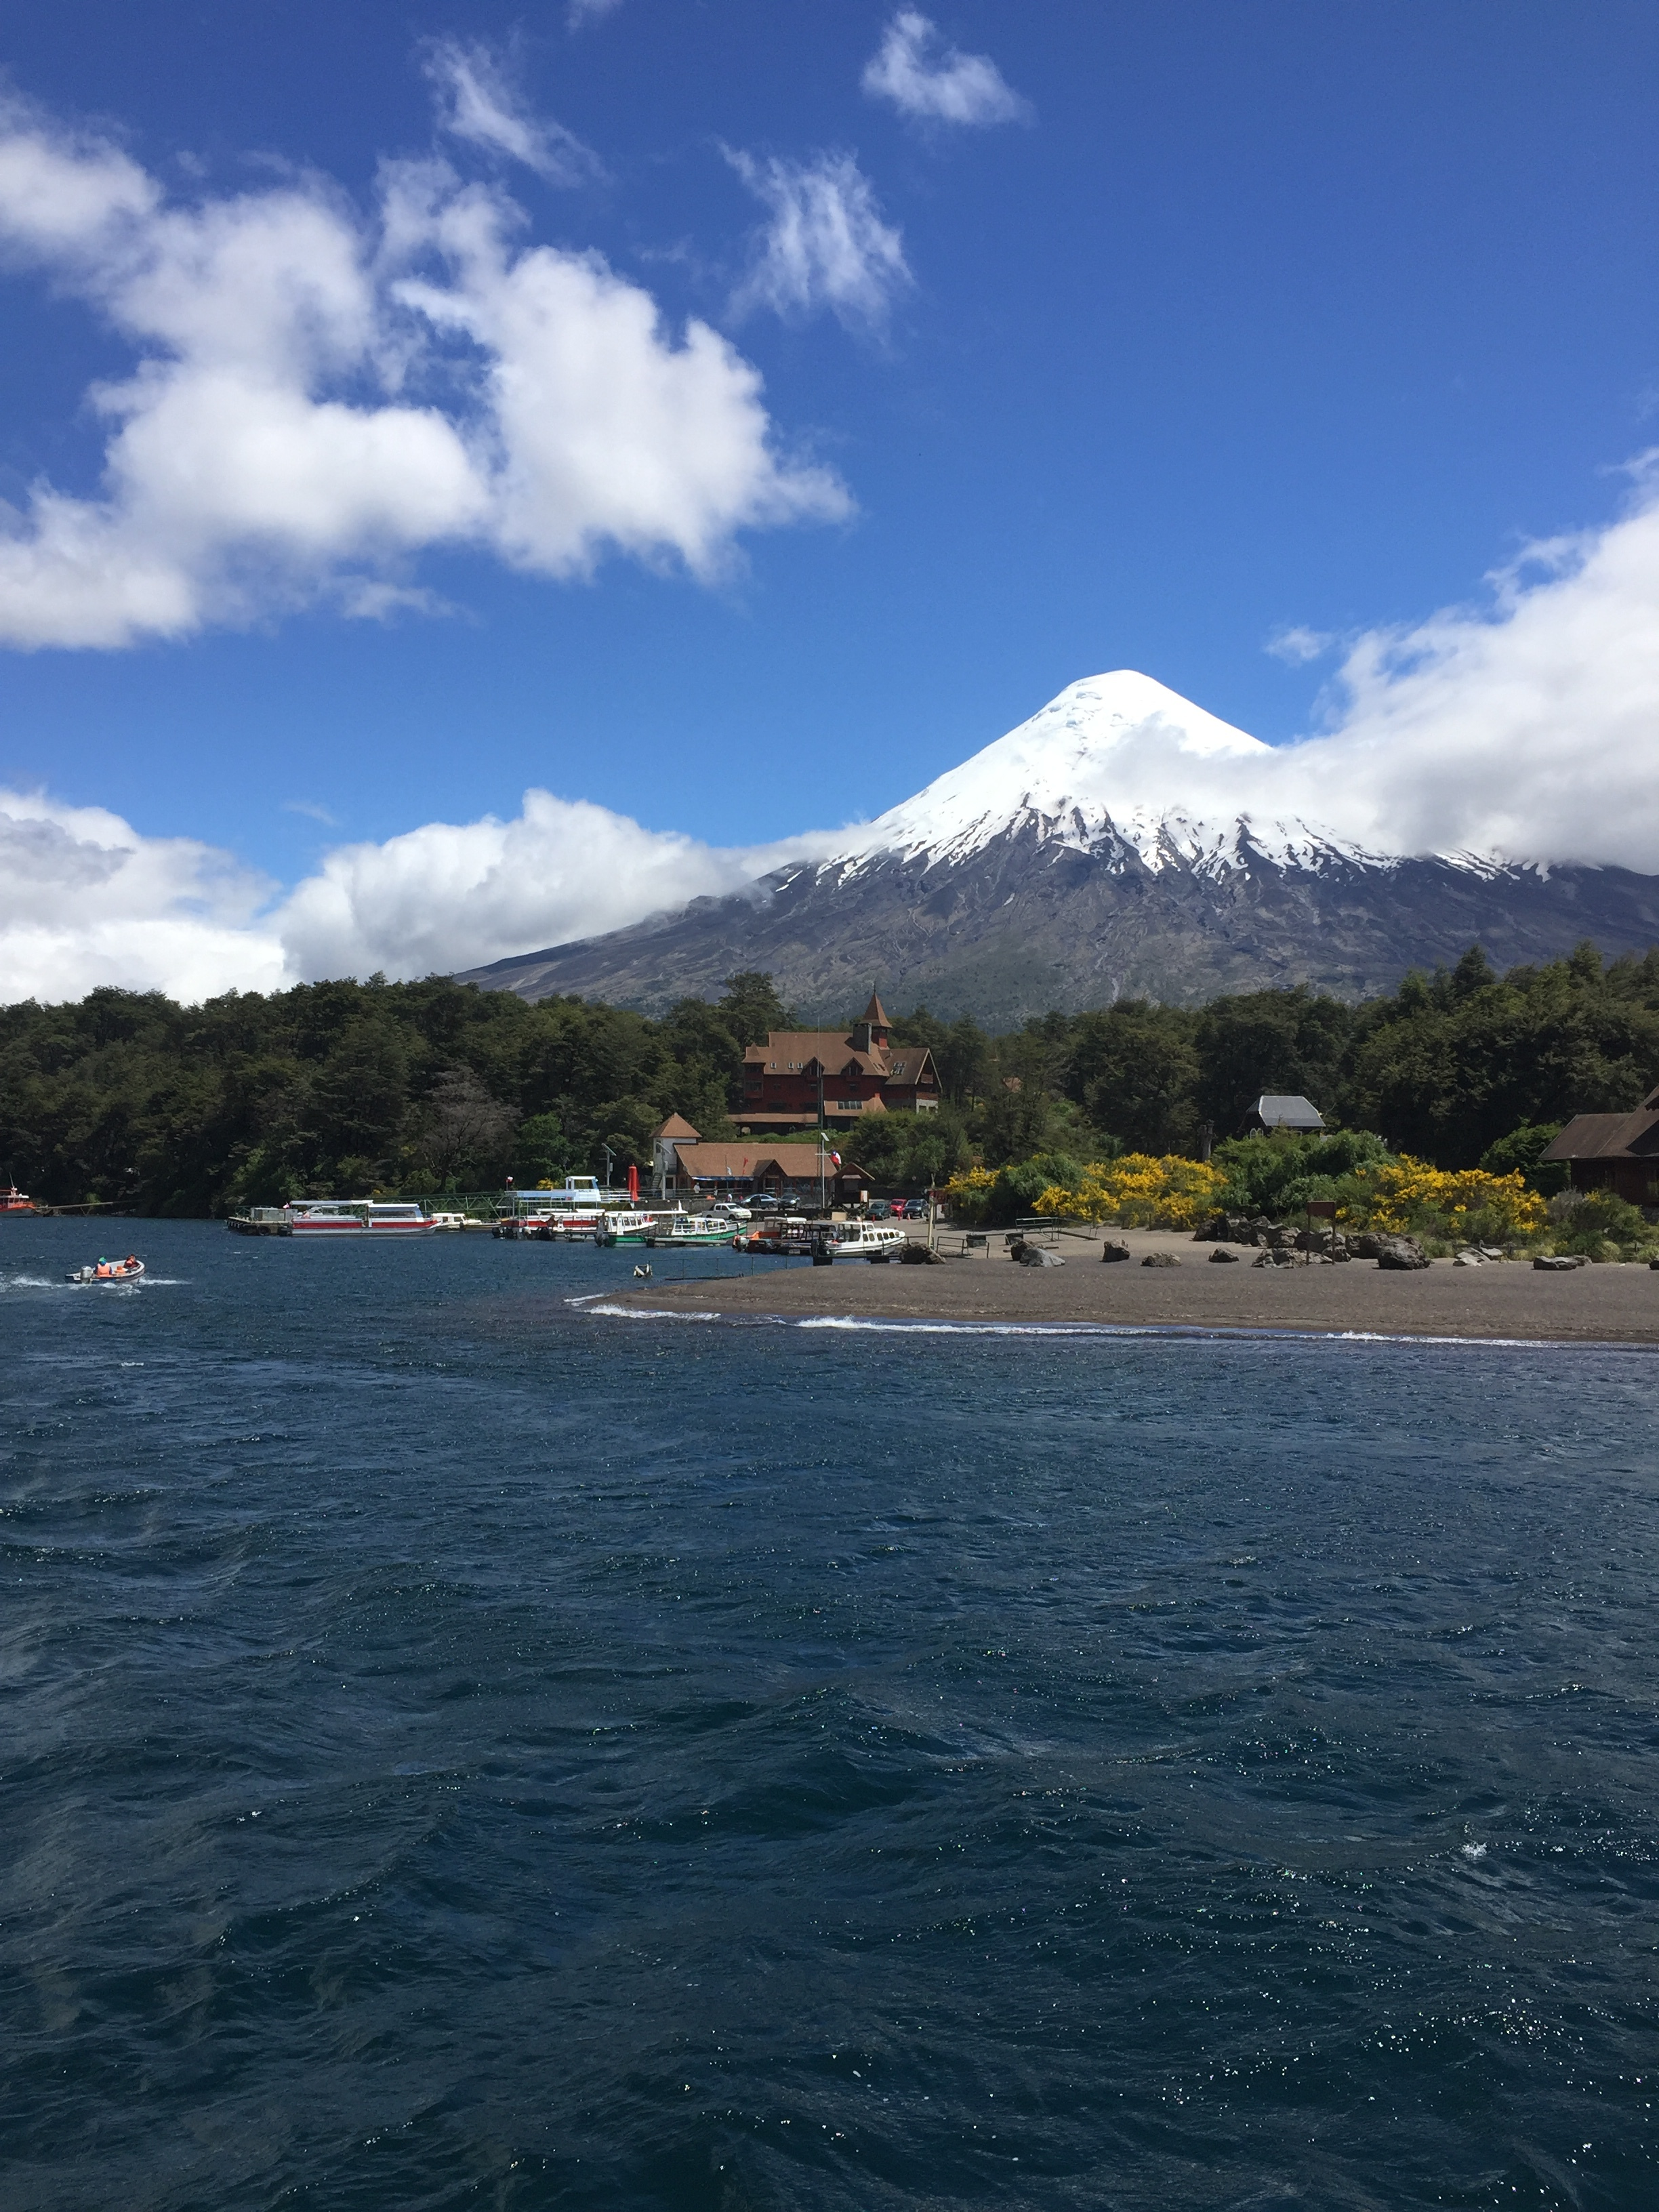 The view of the volcano from the boat, this is the same volcano we hiked but the opposite side